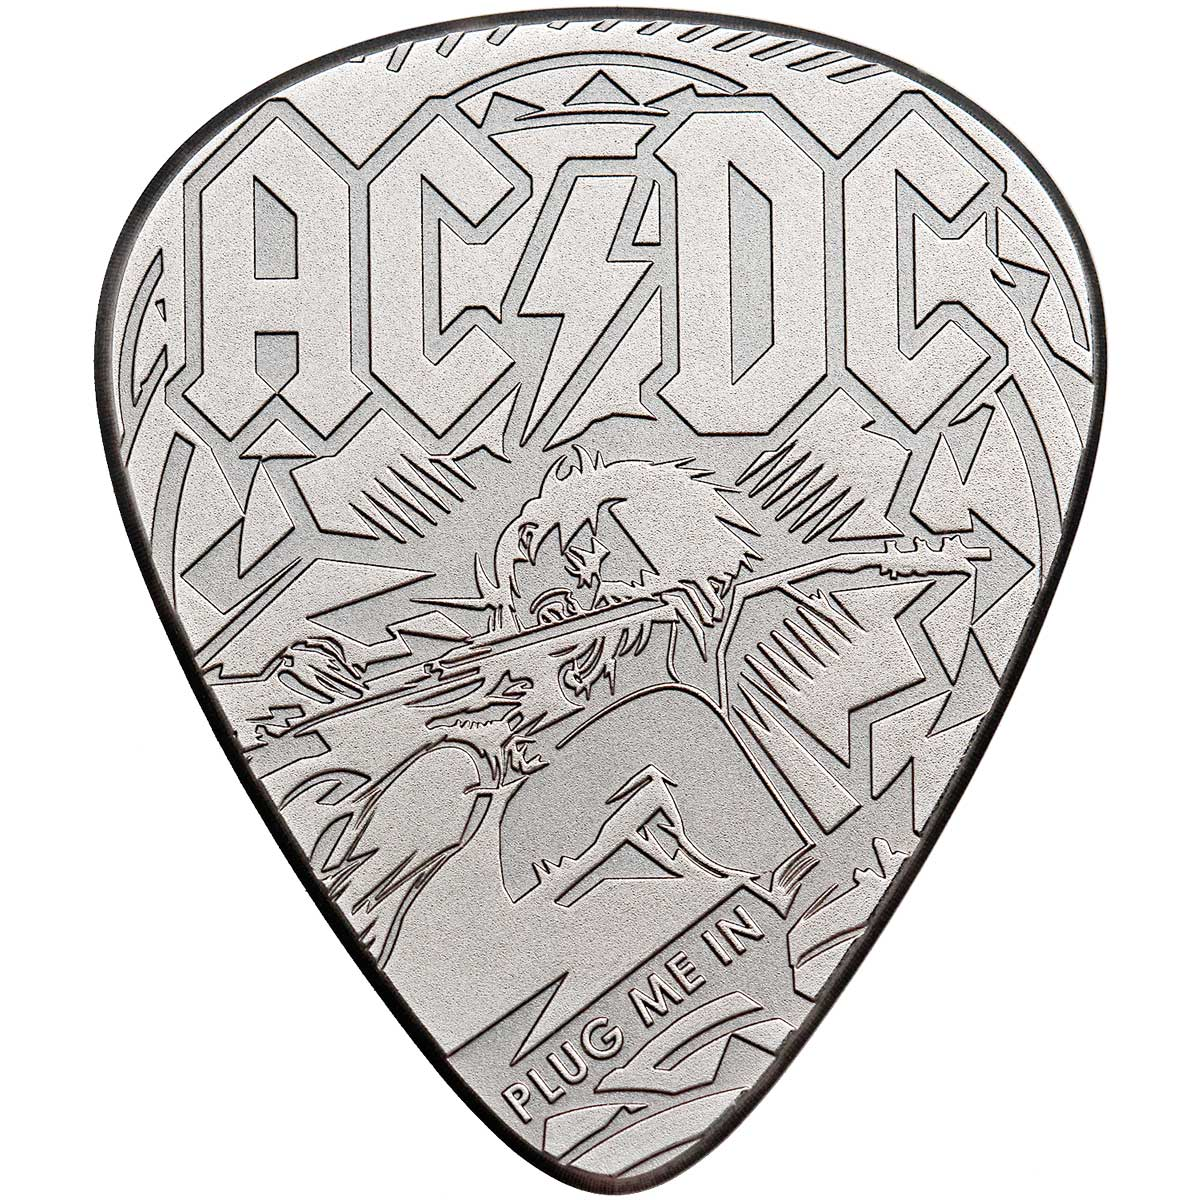 AC/DC GUITAR PICK PLUG ME IN 2019 Cook Islands 1/4oz proof coin